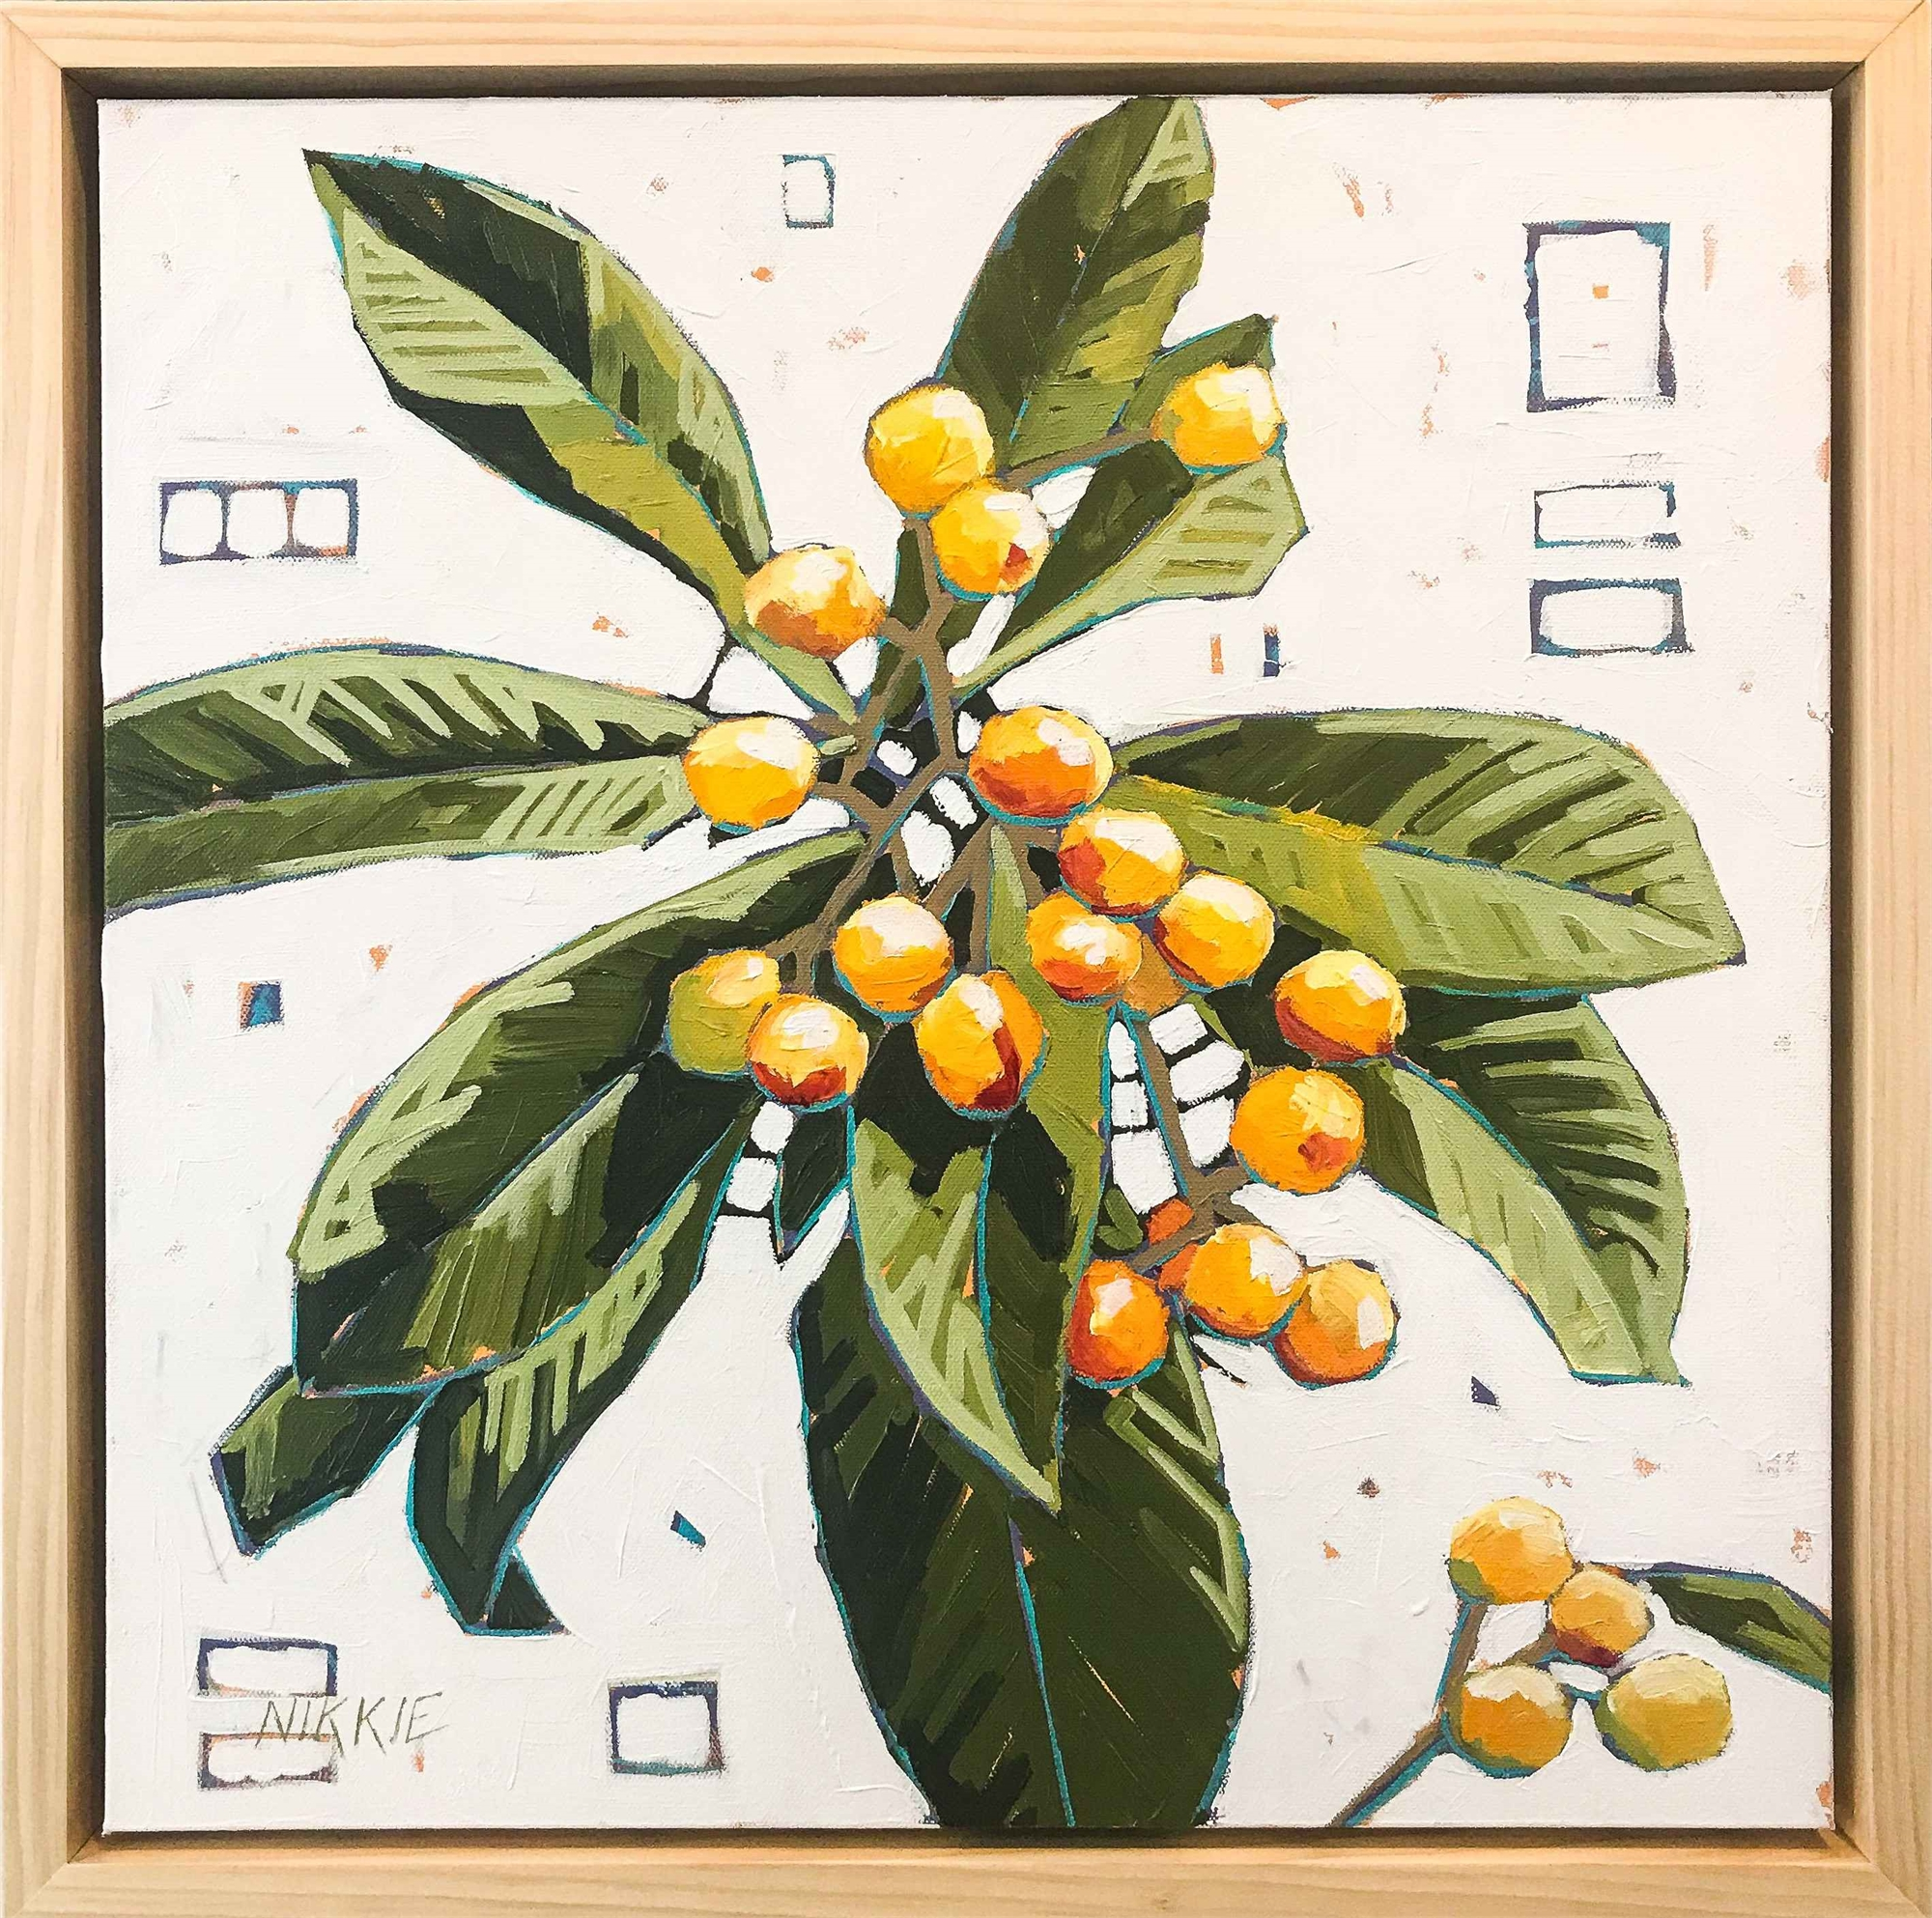 Loquat Love by Nikkie Markle